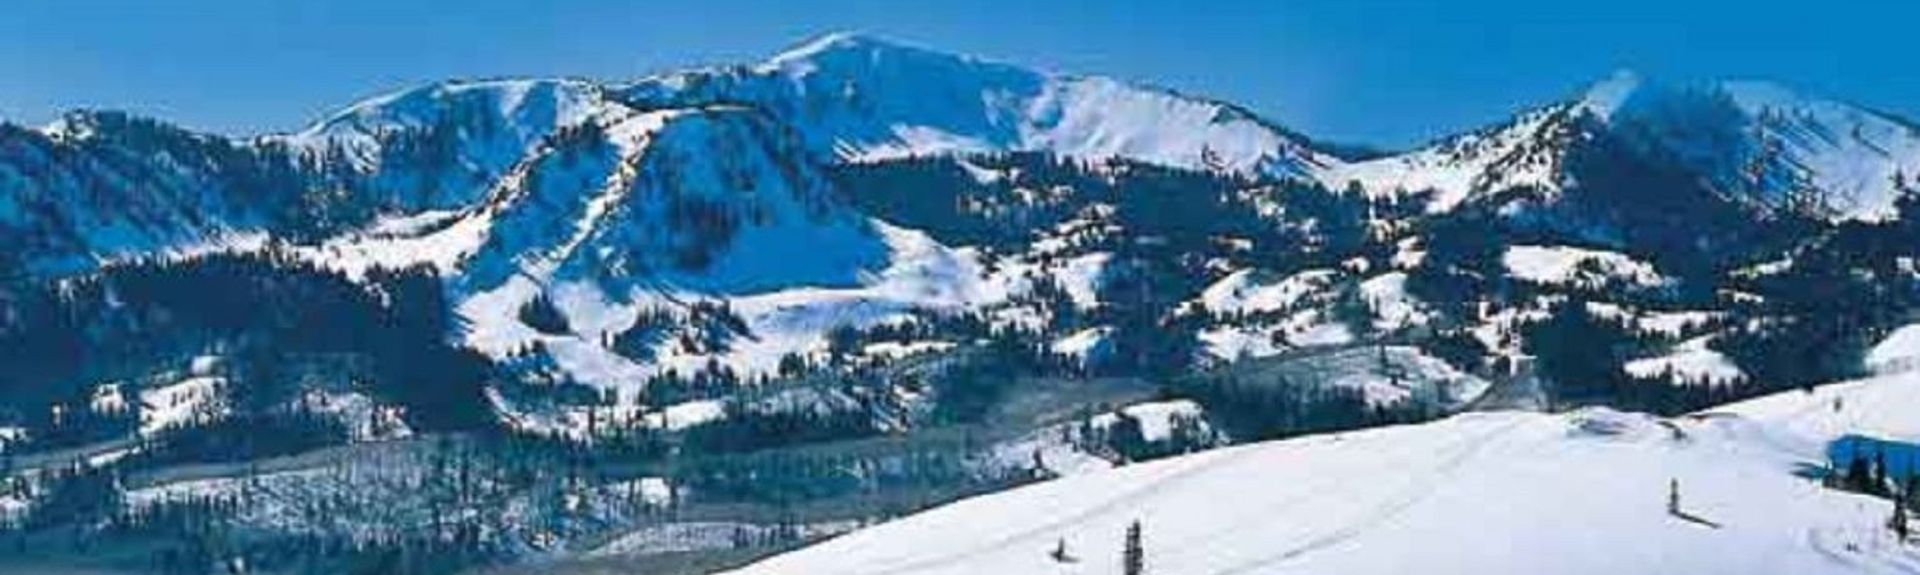 Kimball Junction, Park City, Utah, Estados Unidos